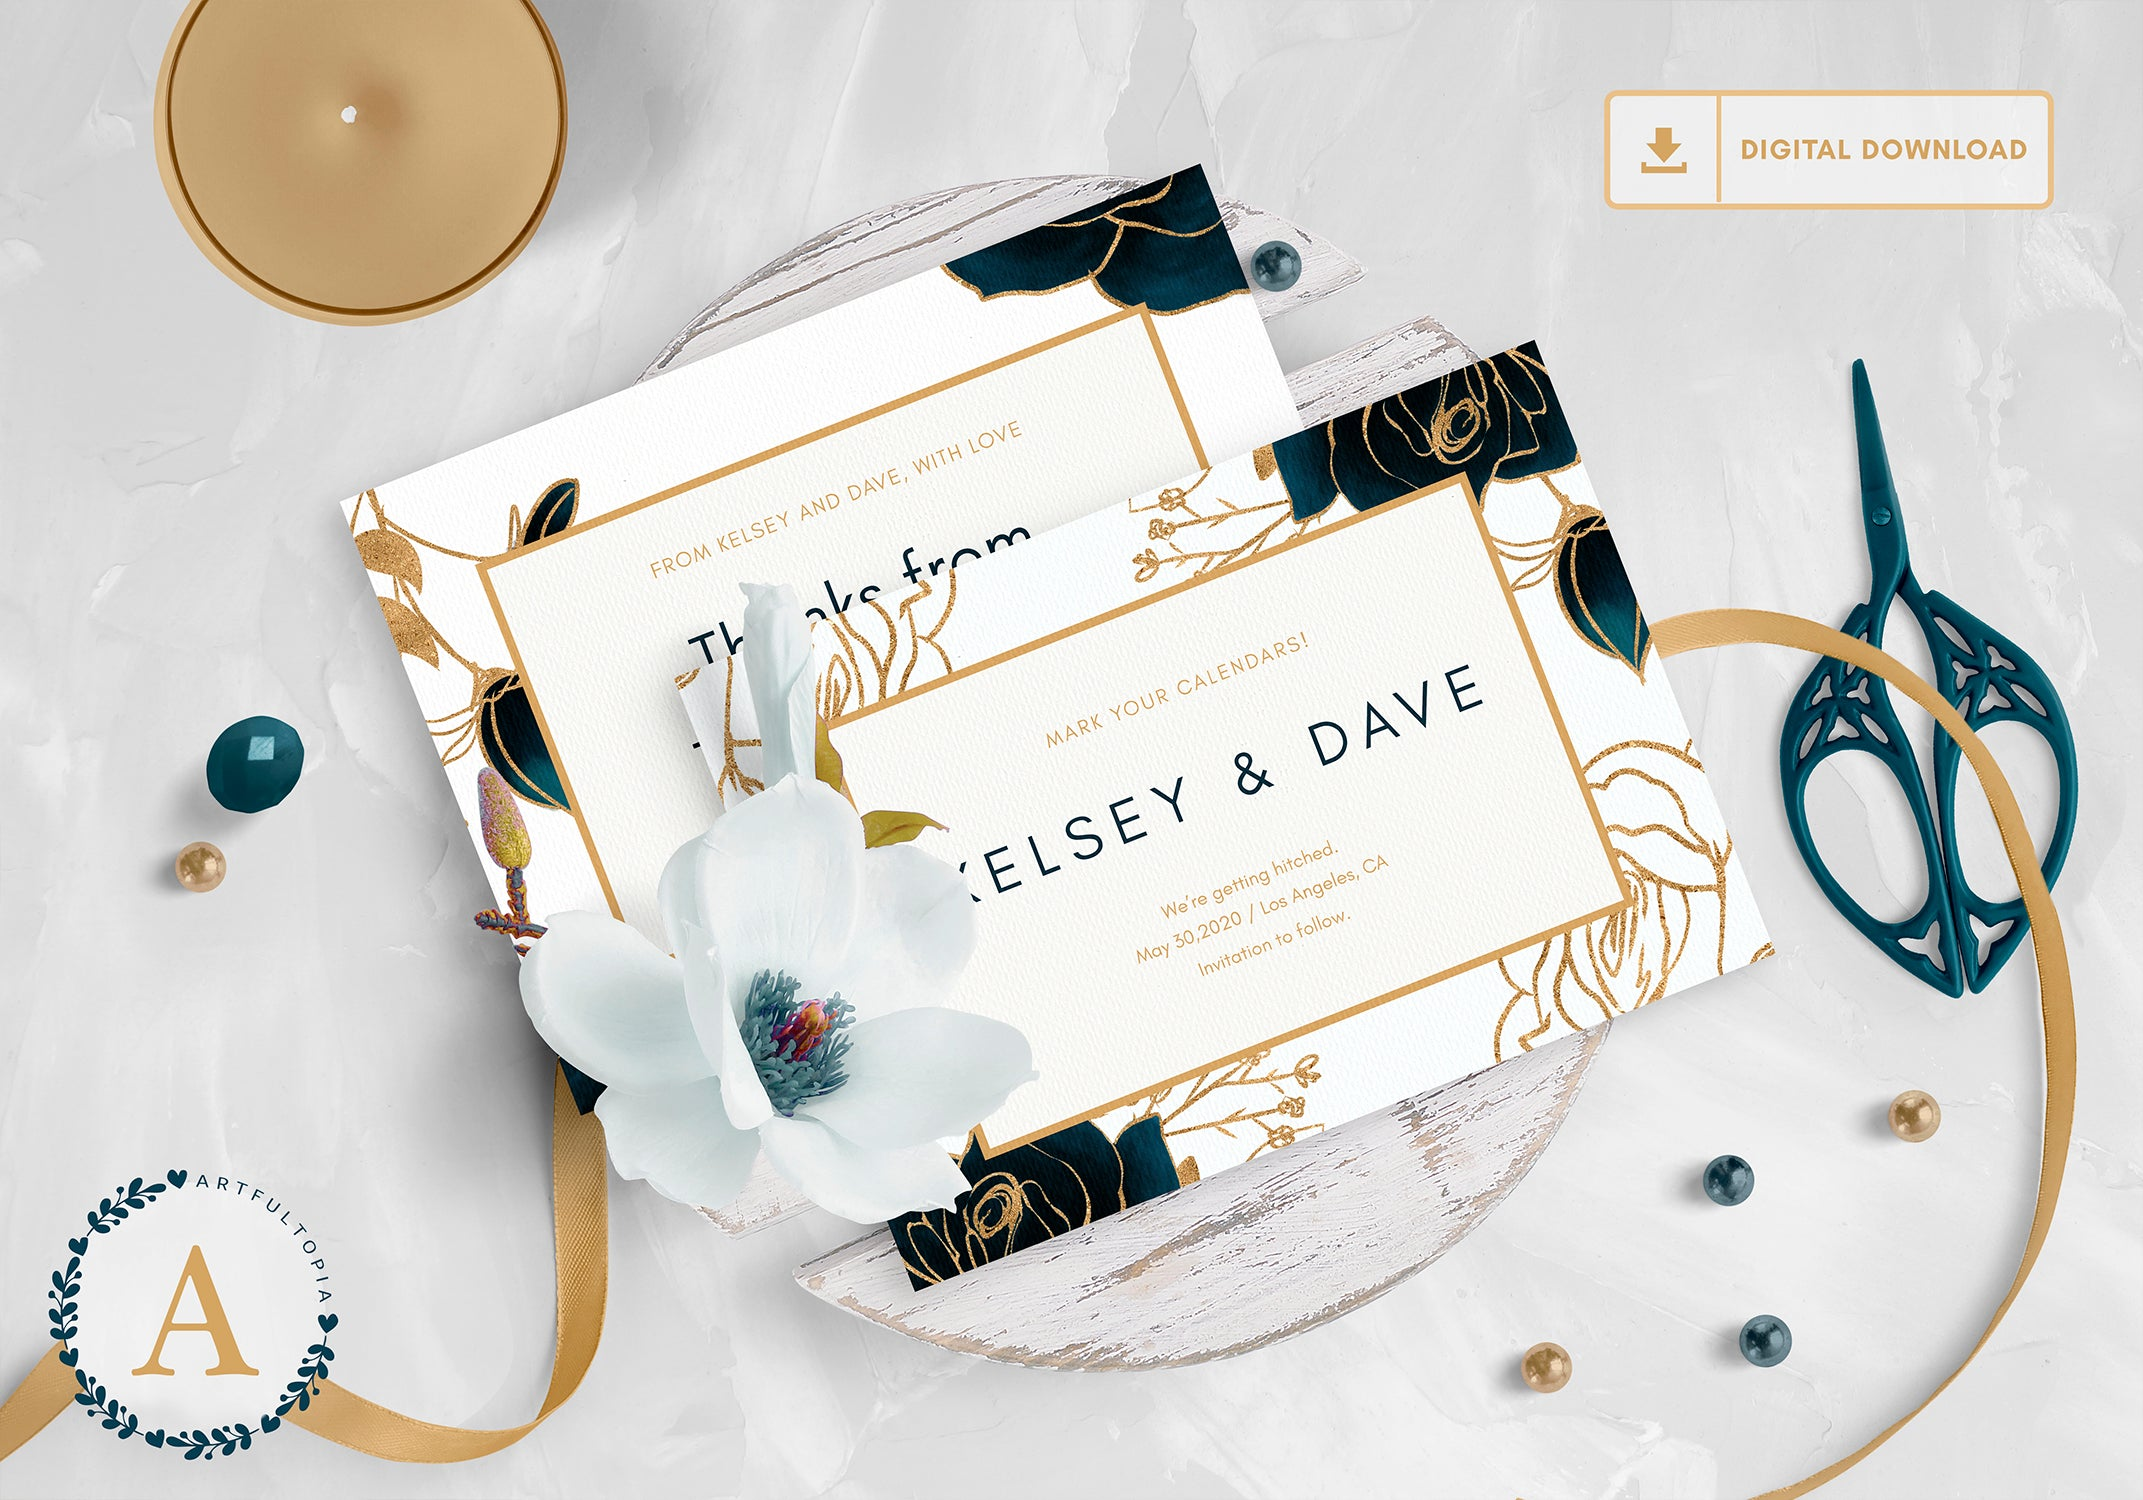 Printable Flowers & Gold Wedding Invitation Set Template Digital Download .PSD wedding stationery wedding suite wedding set wedding templete set wedding psd template fully editable fully customizable floral template flower template floral watercolor wedding template